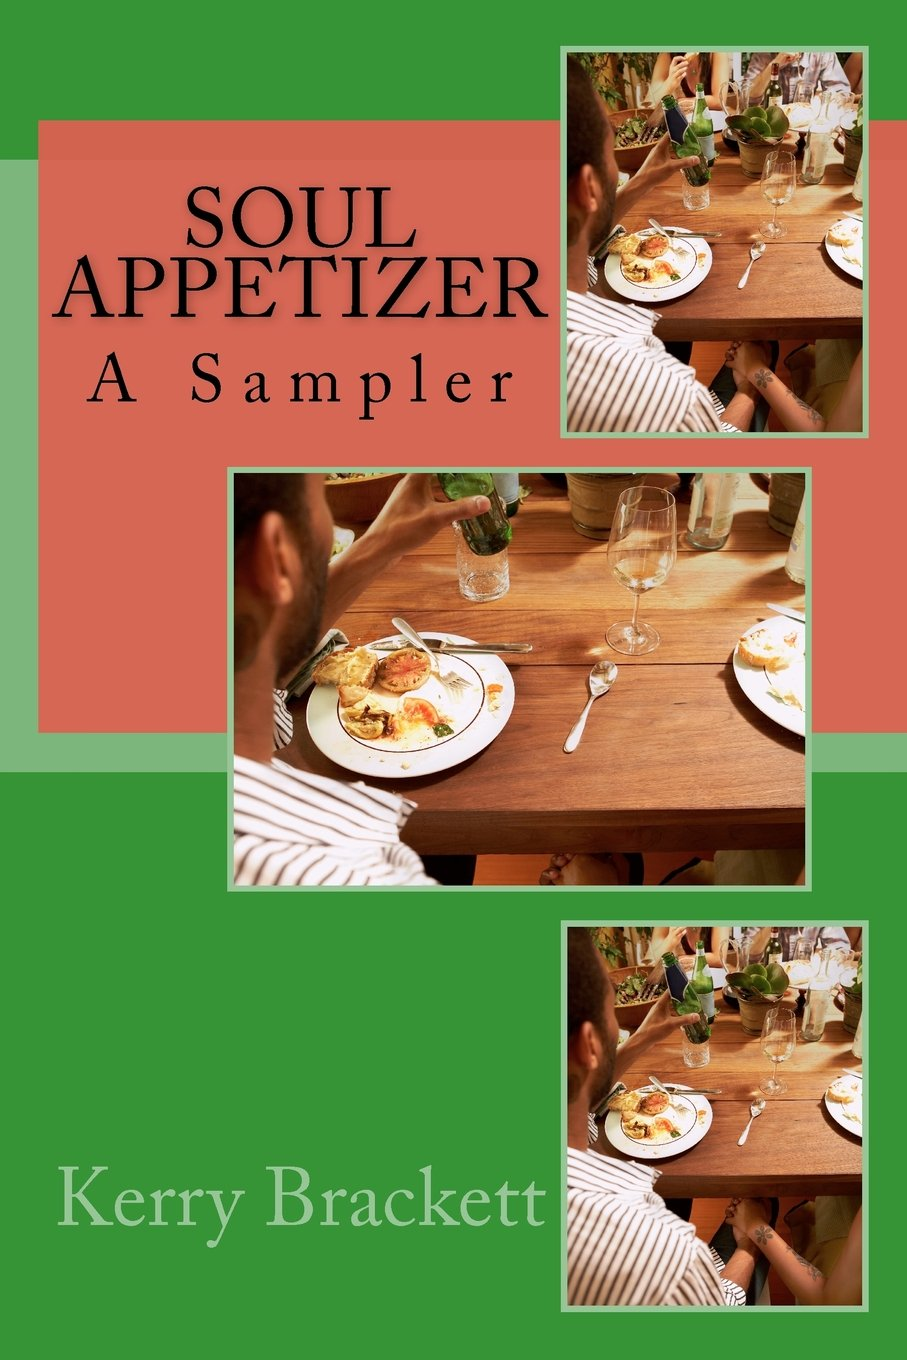 Soul Appetizer: The Sampler by Kerry Brackett